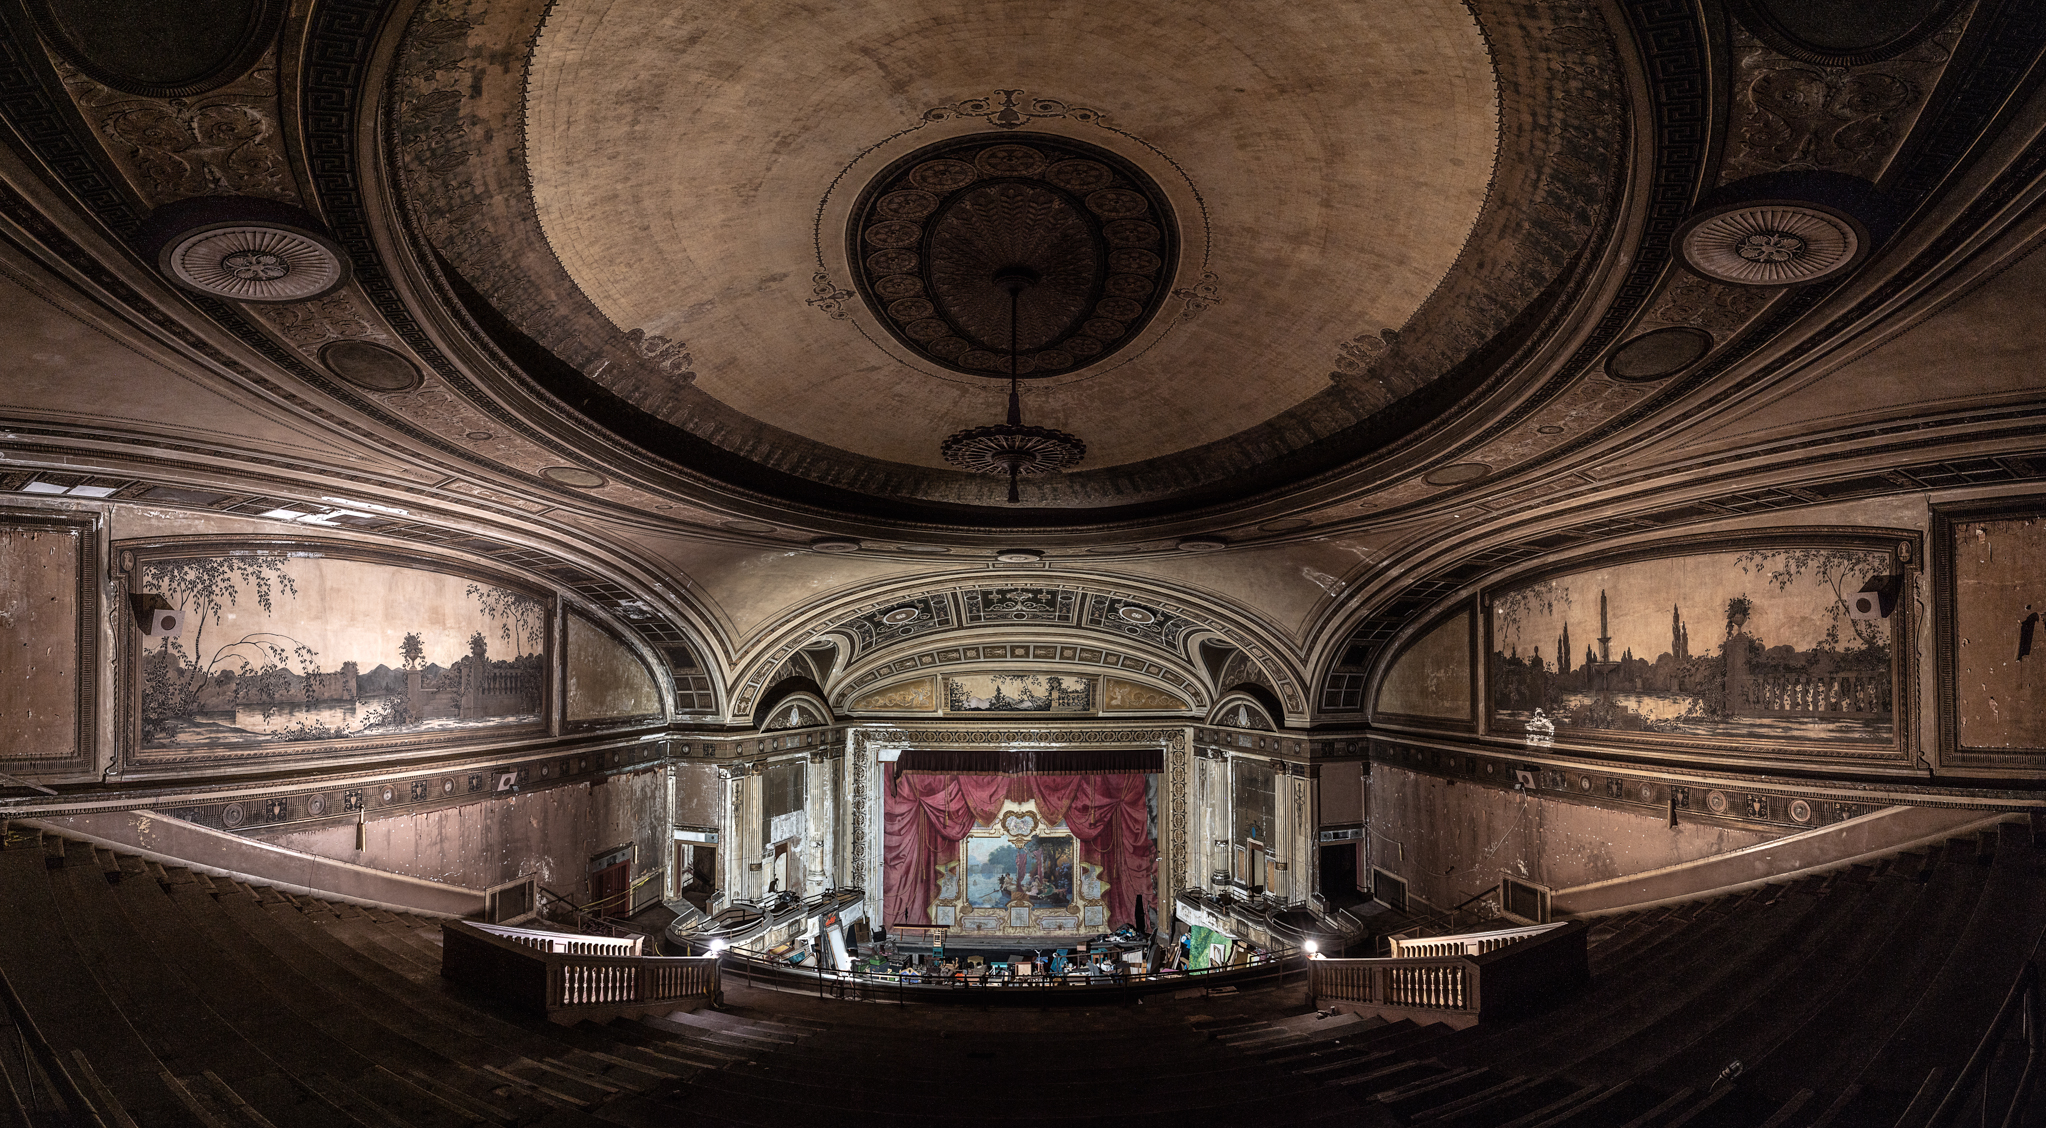 TWKP_August 05, 2018__Urbex_91-20-Pano-Edit.jpg